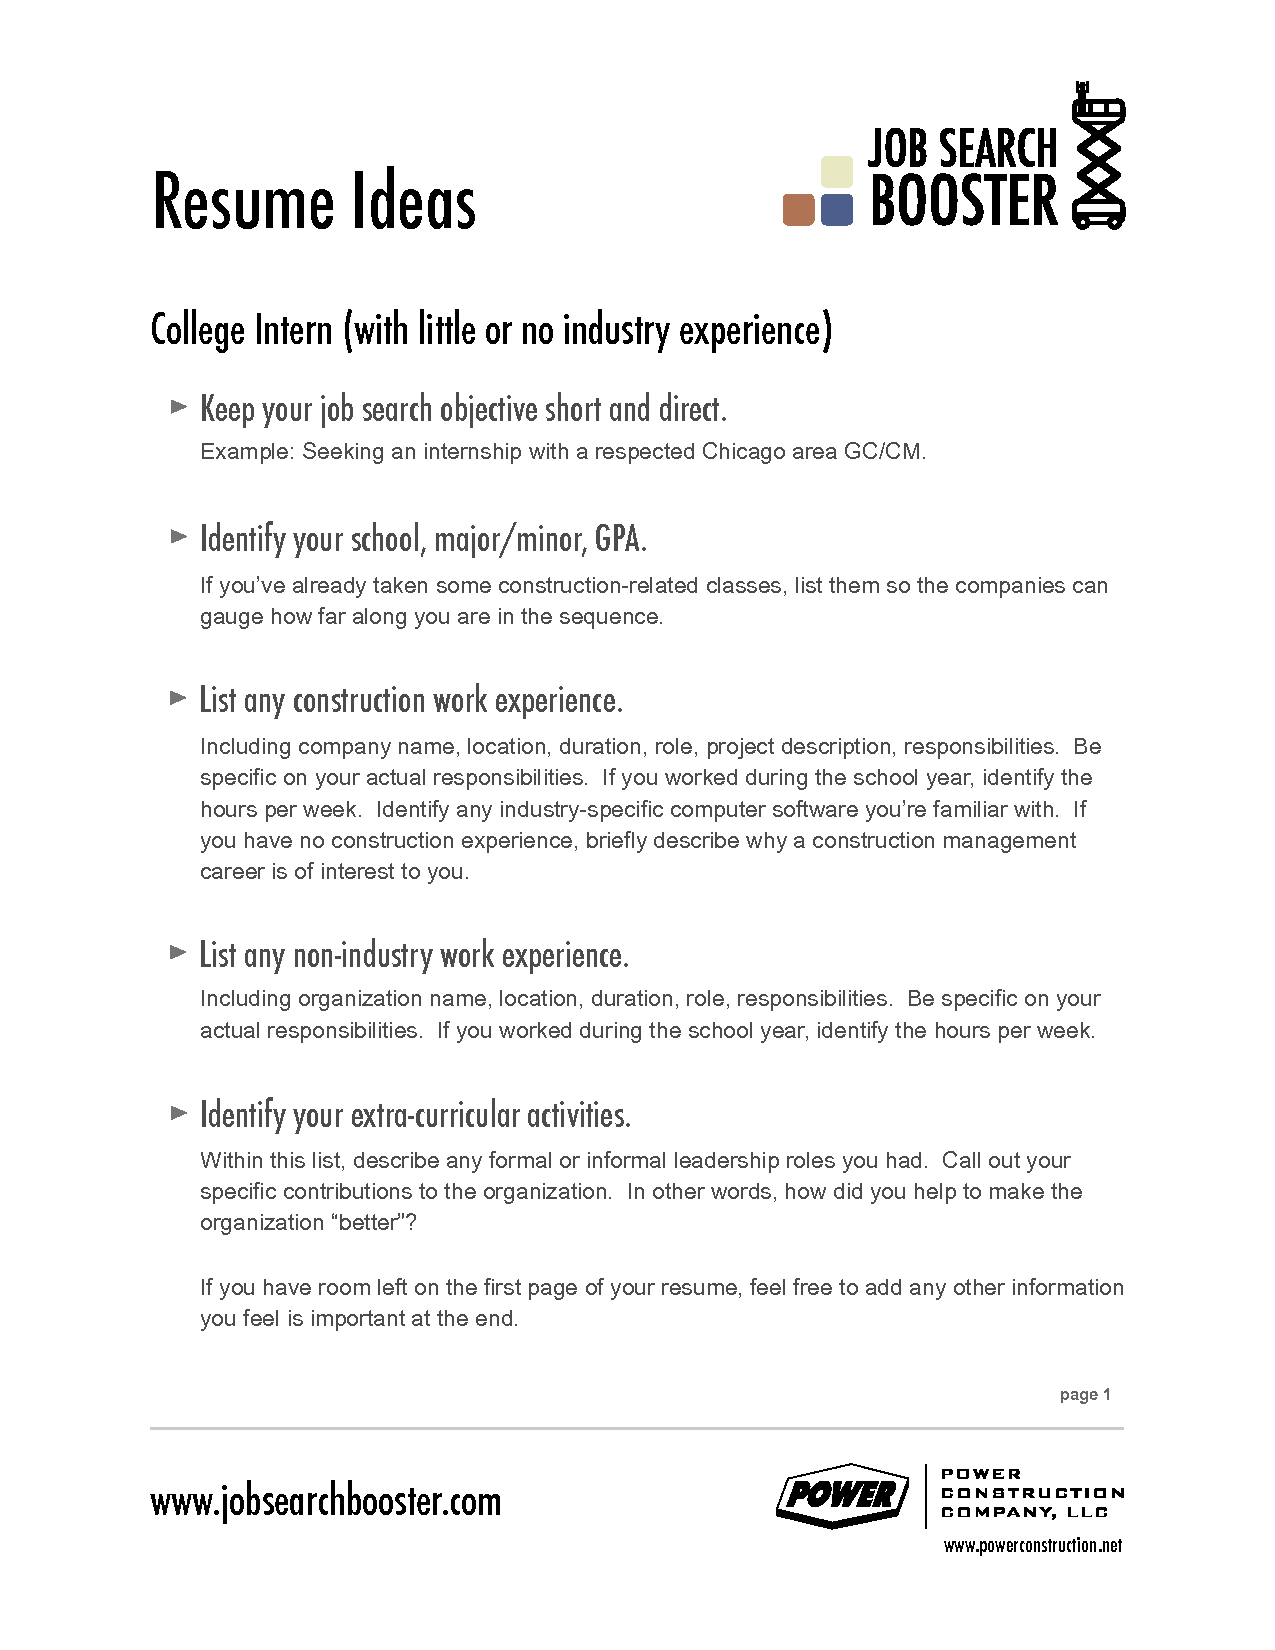 Resume Objective Examples Job Resume Objective Examples resumes